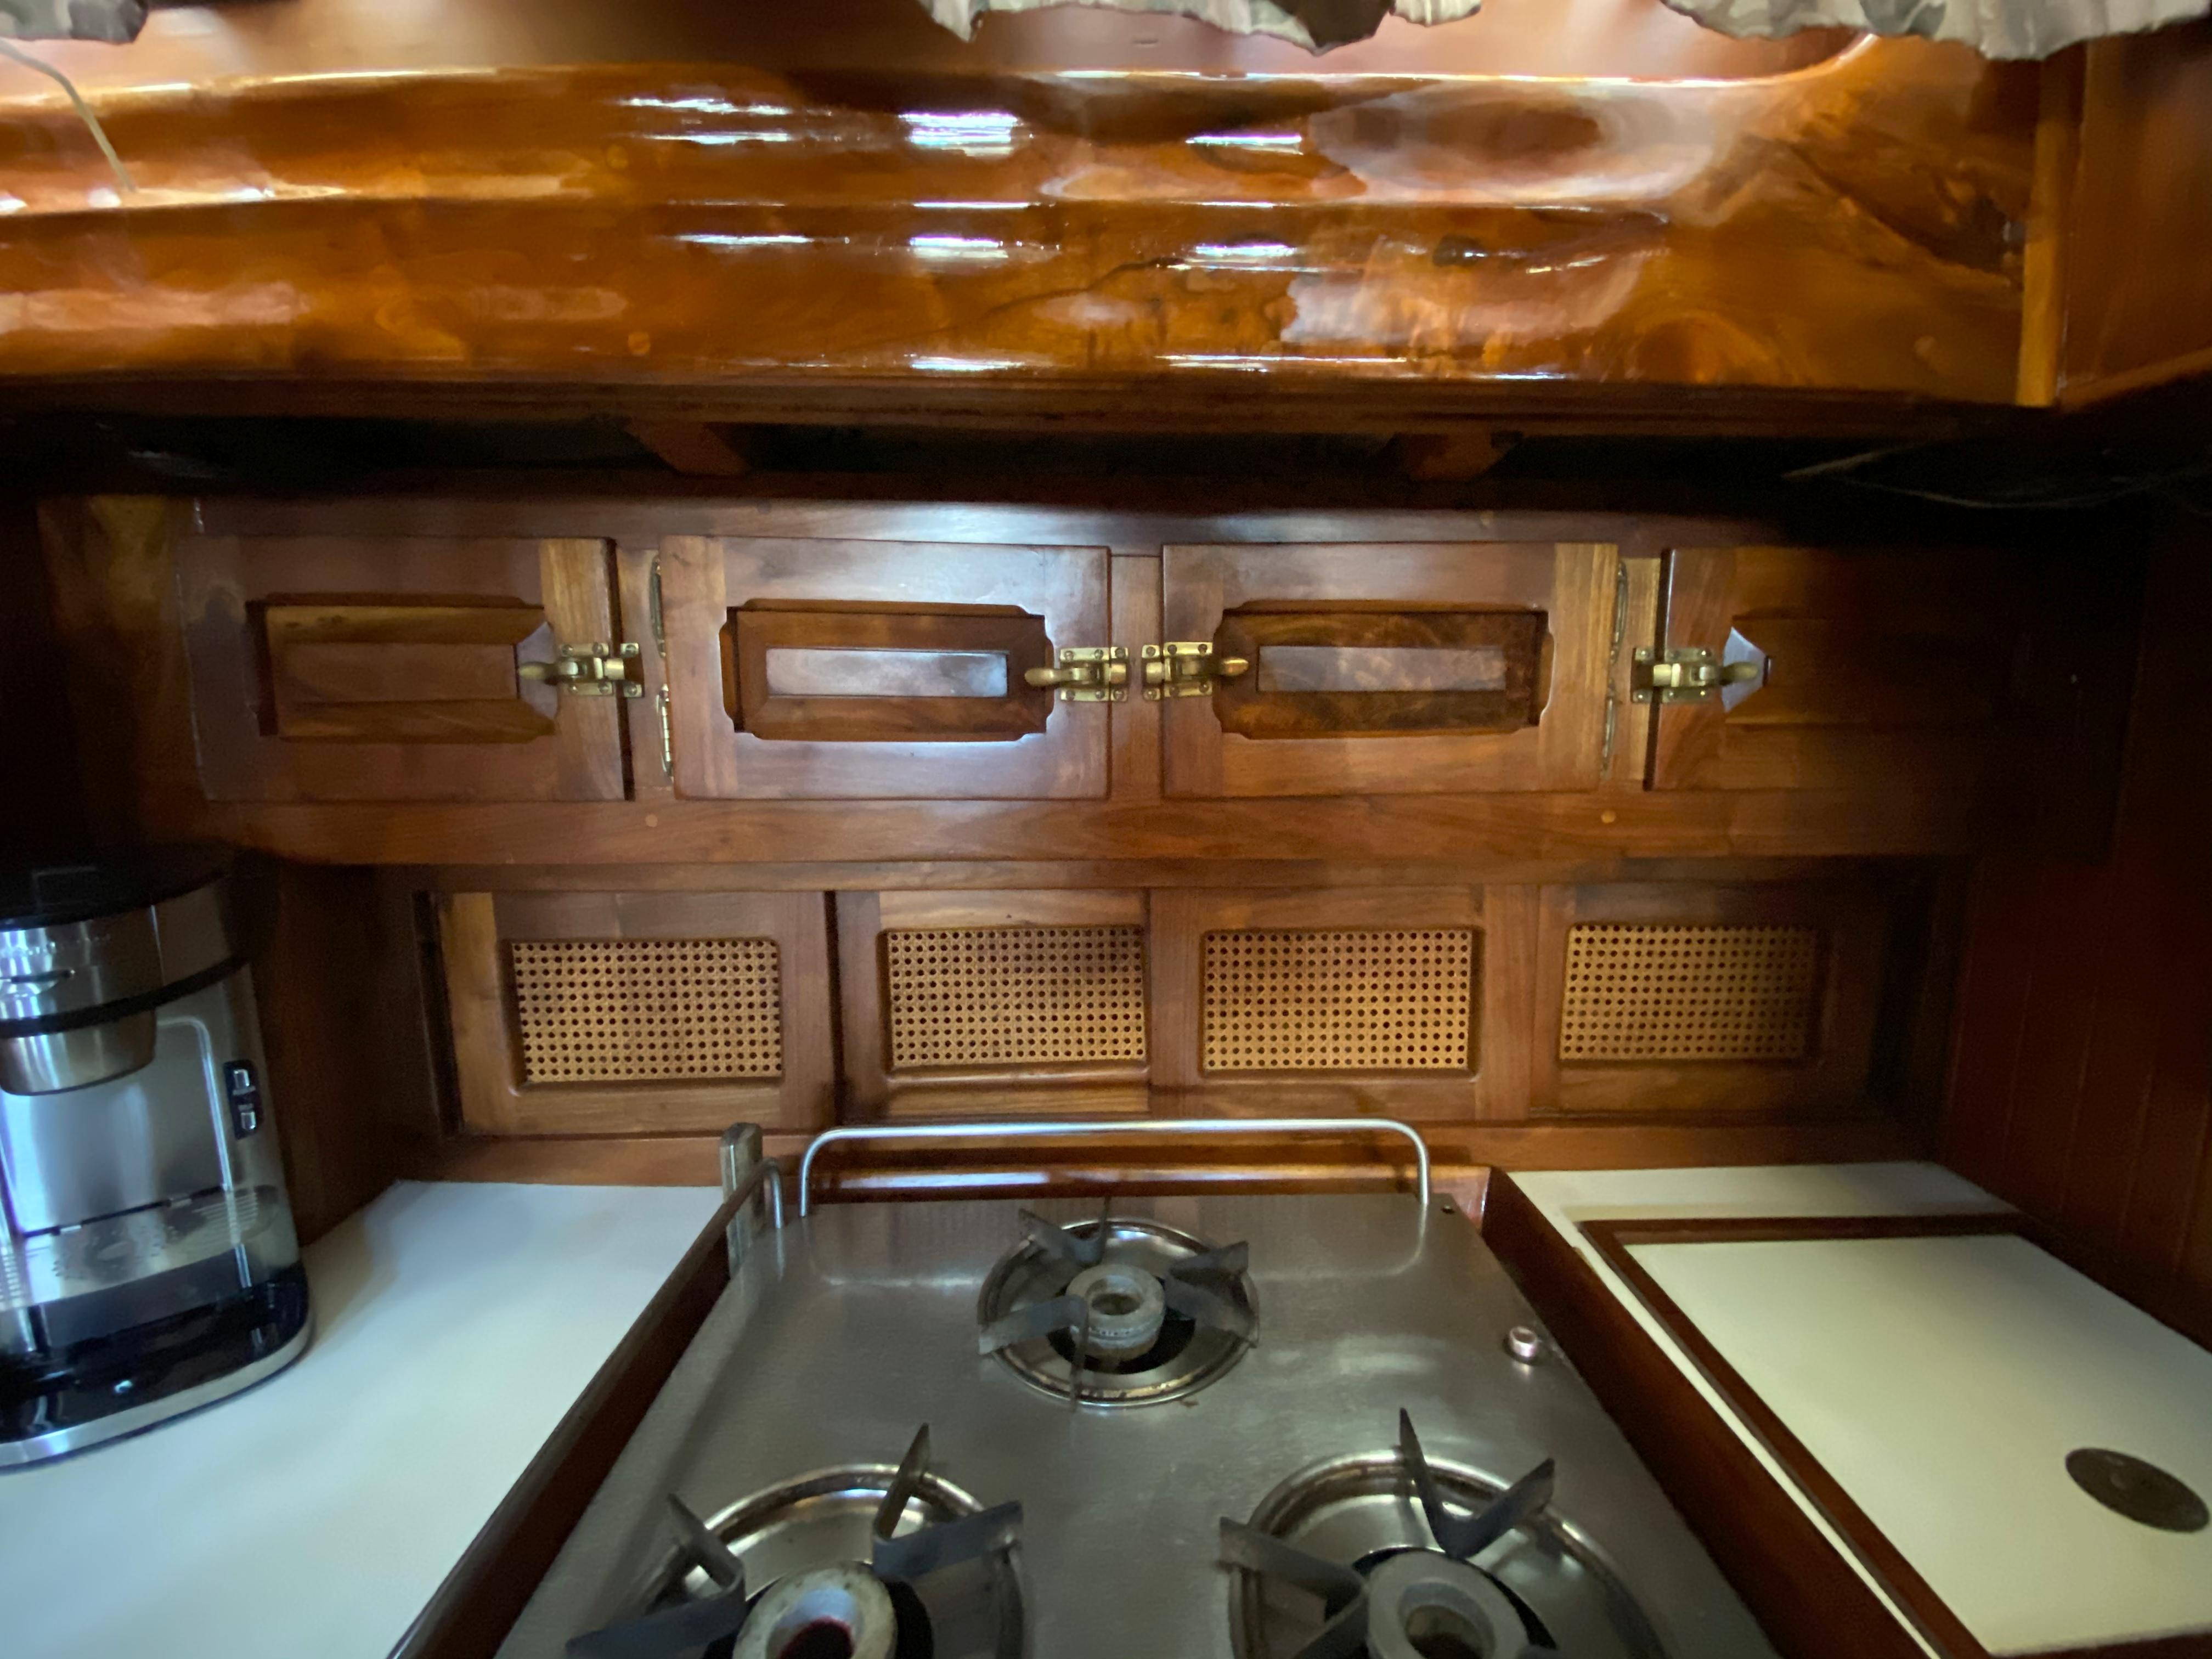 Galley Storage and Cabinetry